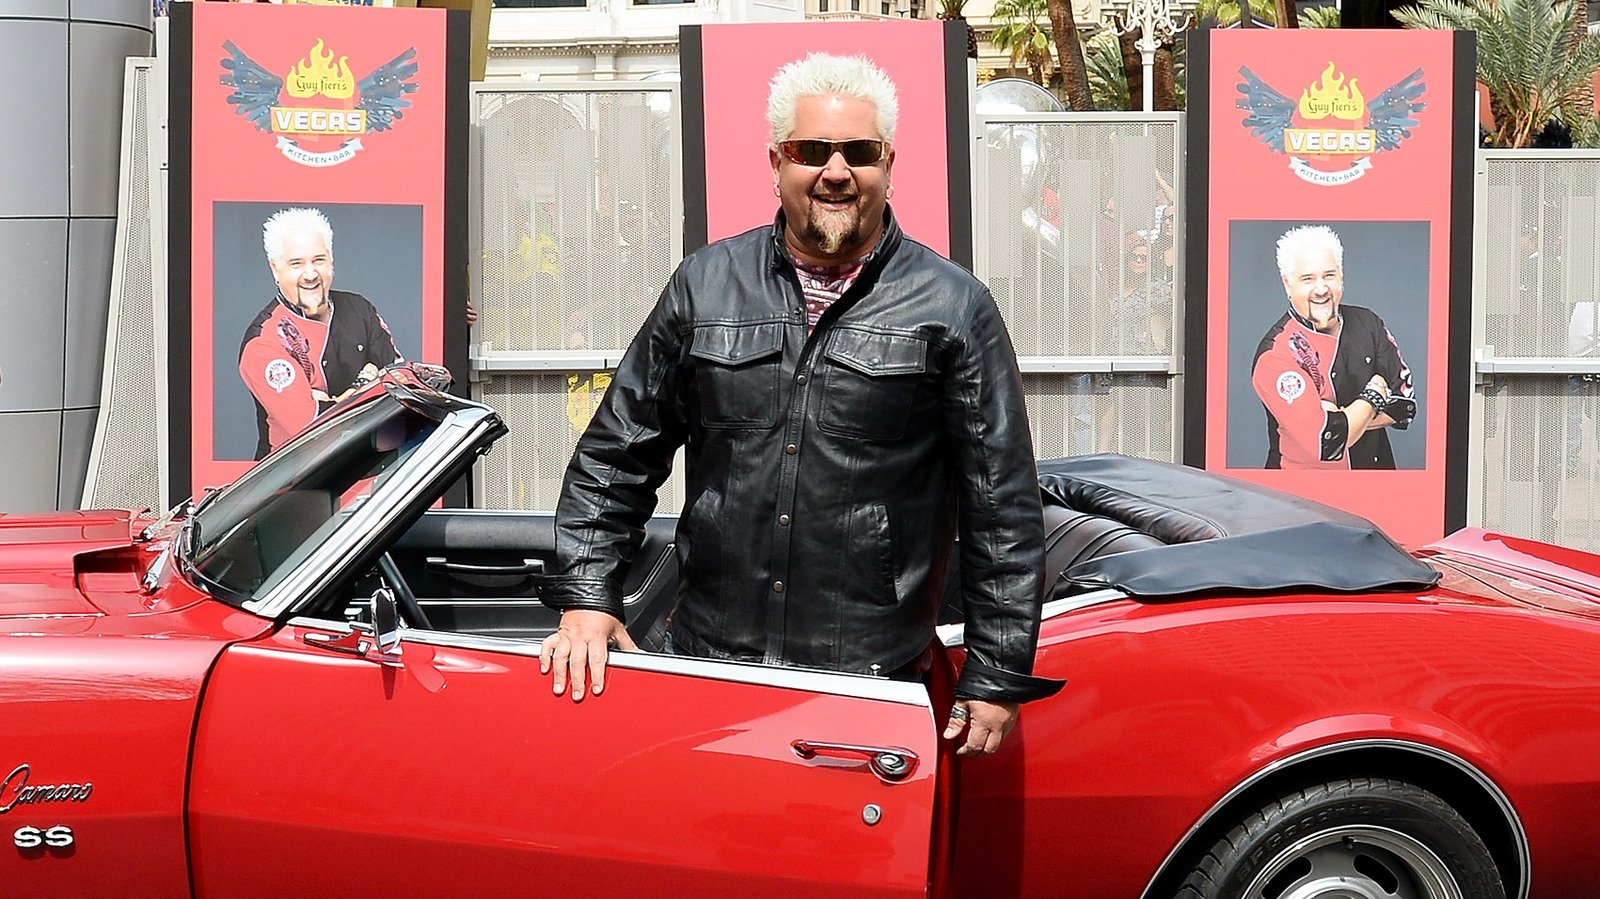 The Best Diners, Drive-Ins And Dives Restaurant In Every State